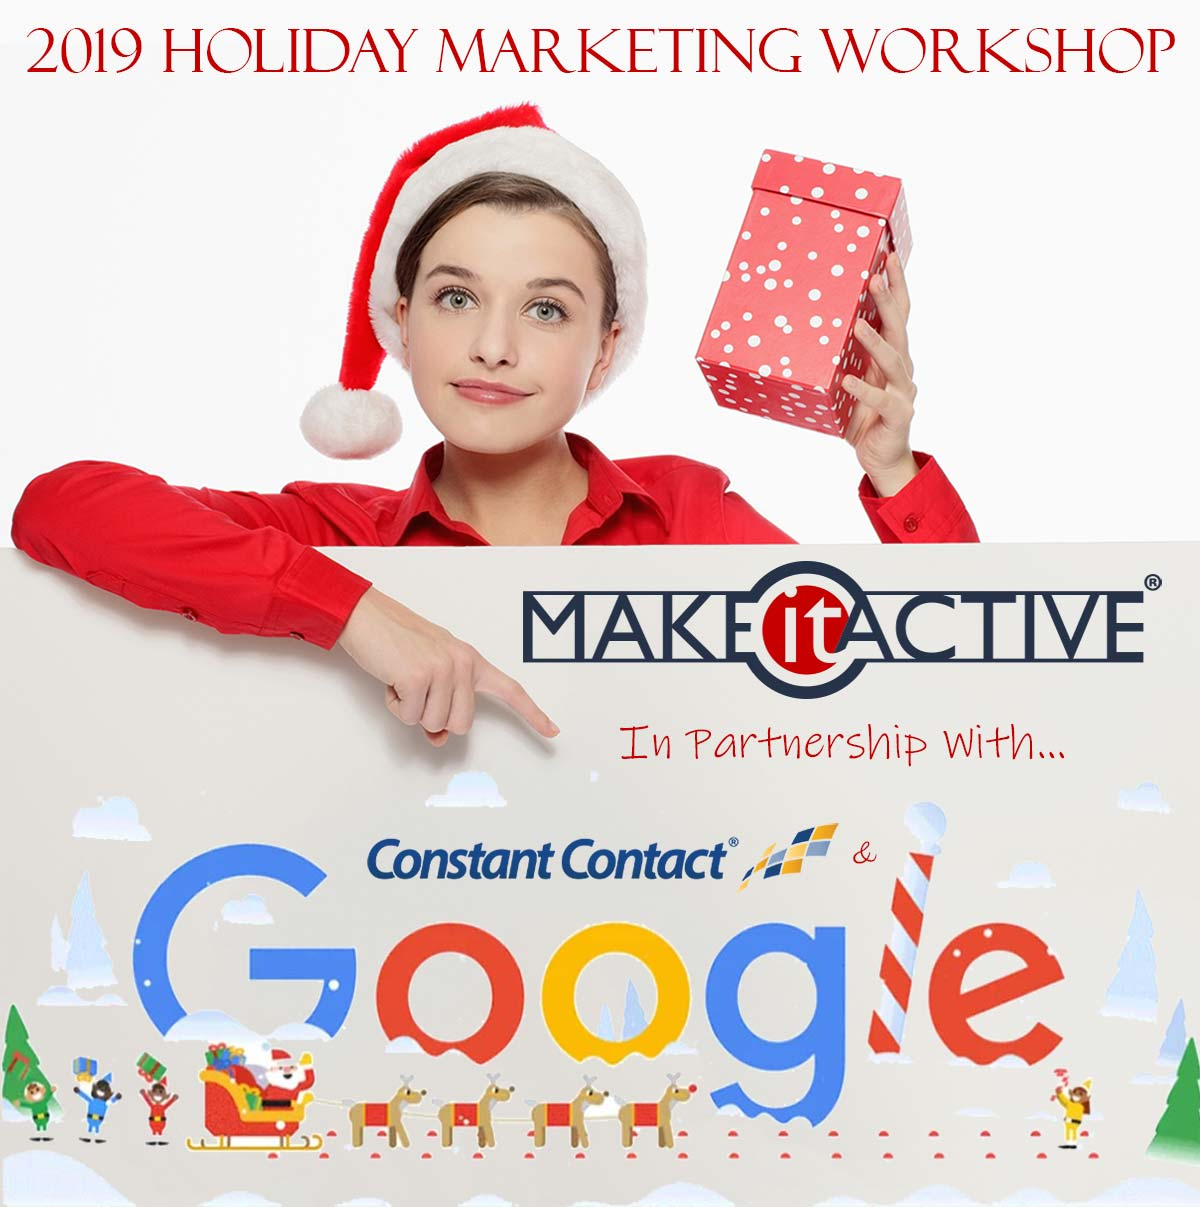 google-nh-digital-marketing-2019 Grow With Google 2019 Dover NH Holiday Workshop - Make it Active, LLC